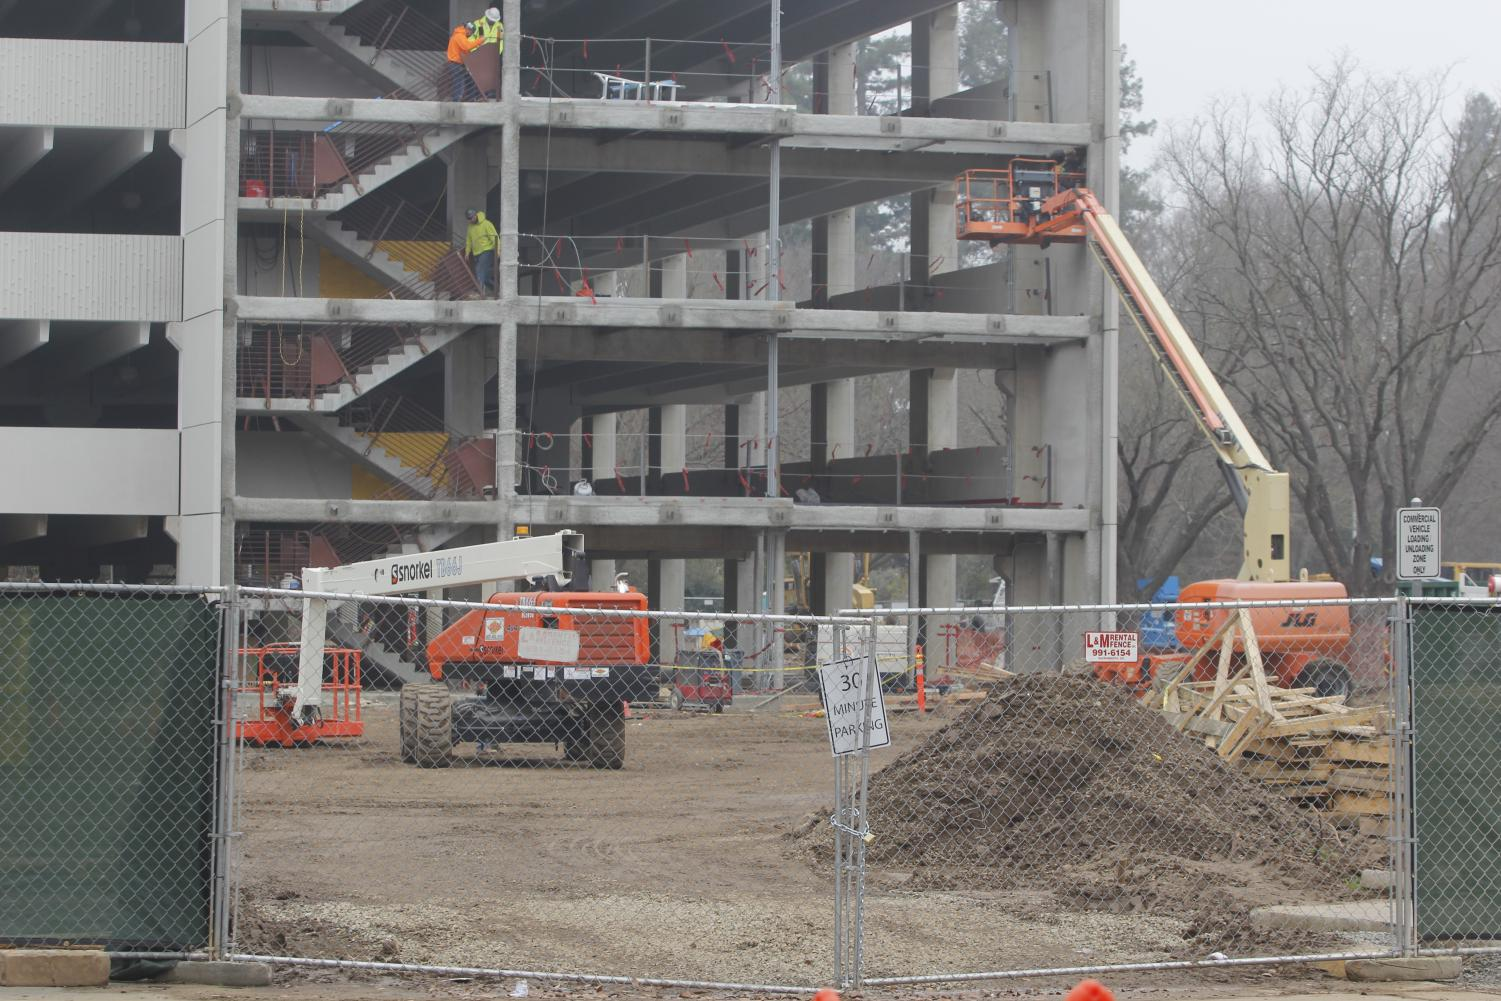 Following delays to the project, Parking Structure V is projected to open in March. An adjacent University Transportation and Parking Services (UTAPS) welcome center will move from Folsom Hall and open for the fall 2019 semester.